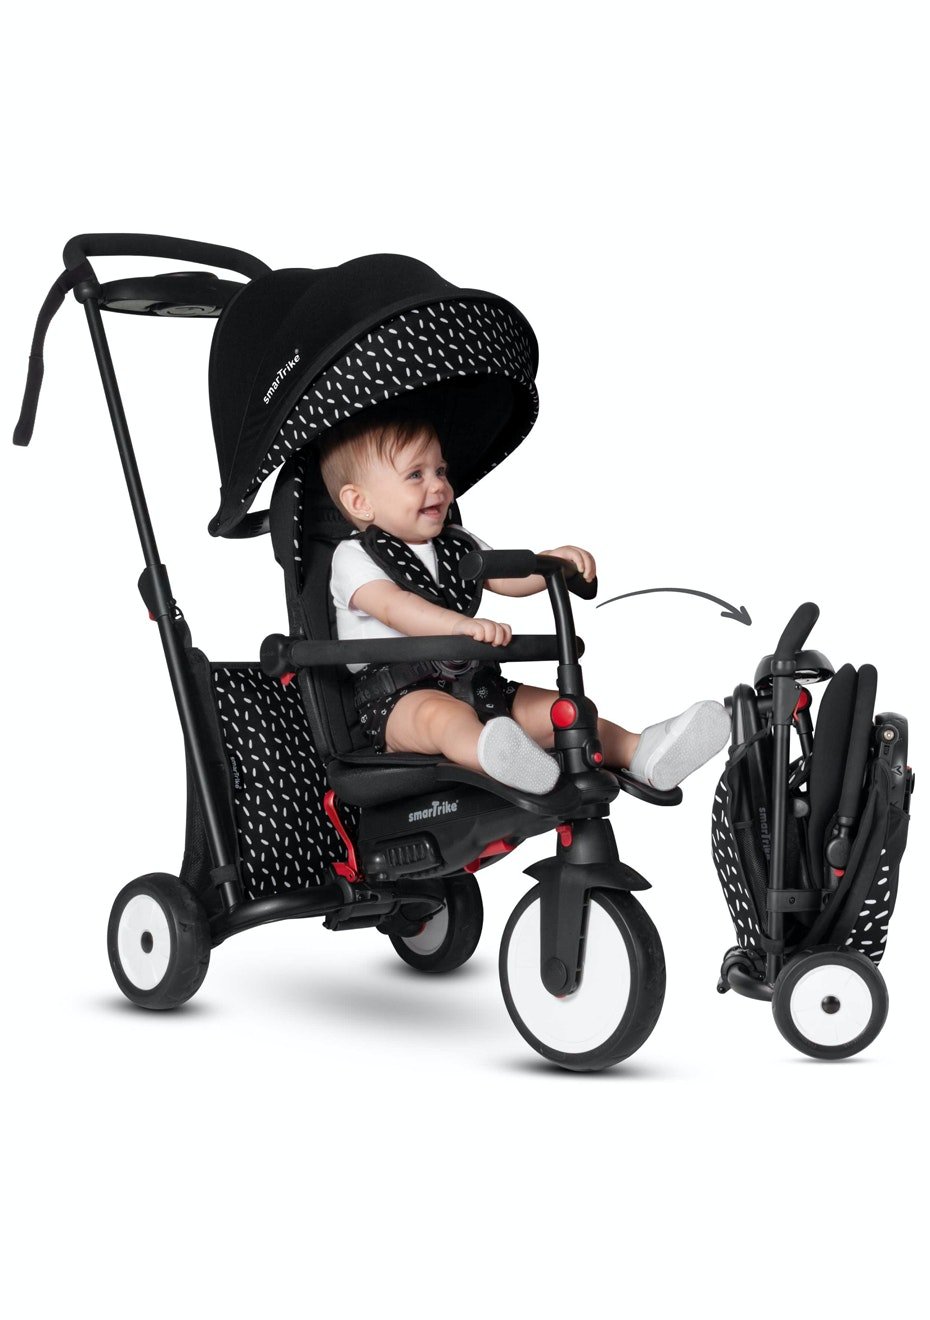 Smartrike Str5 7 In 1 Folding Trike Black White Our Lowest Price Ever Madd Gear Scooters More Onceit